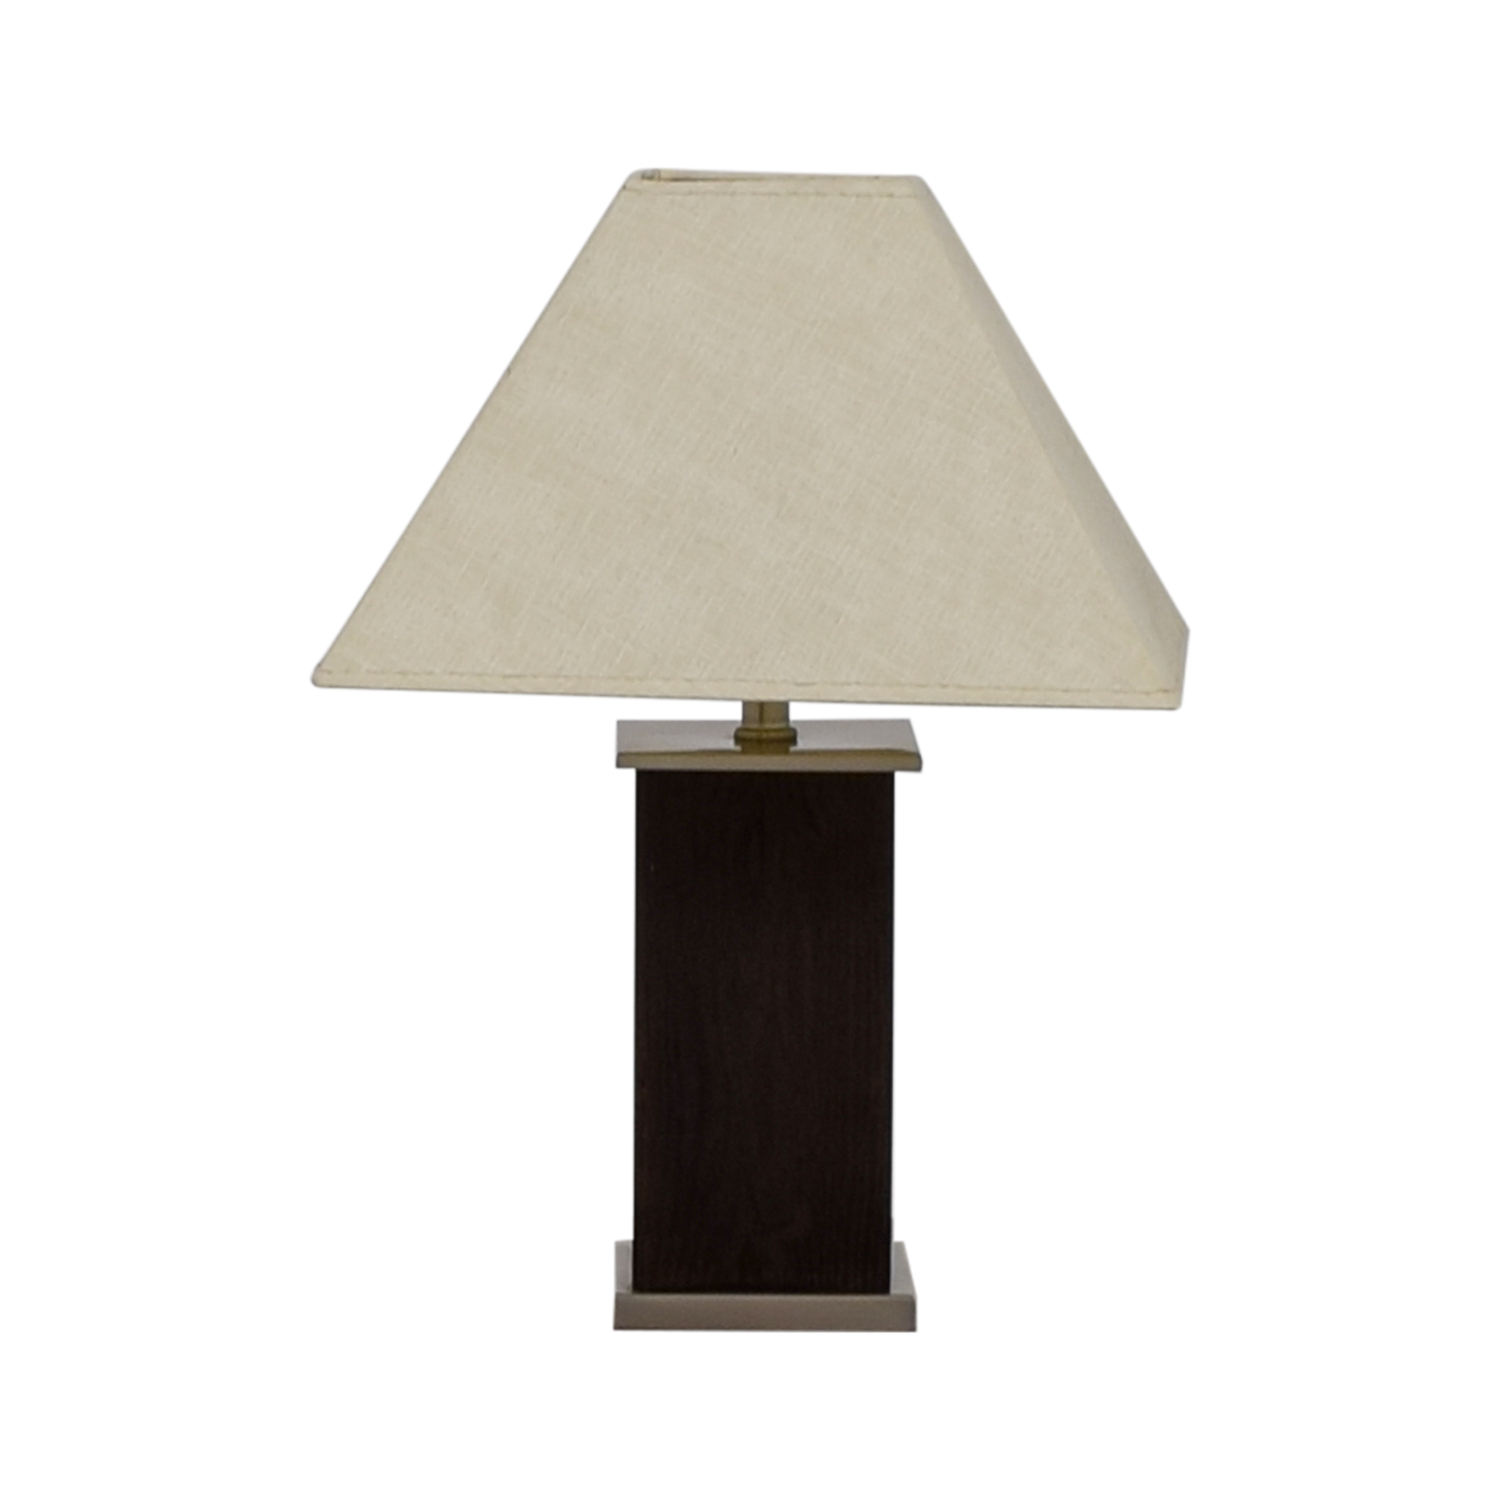 Brown Block Base Table Lamp used